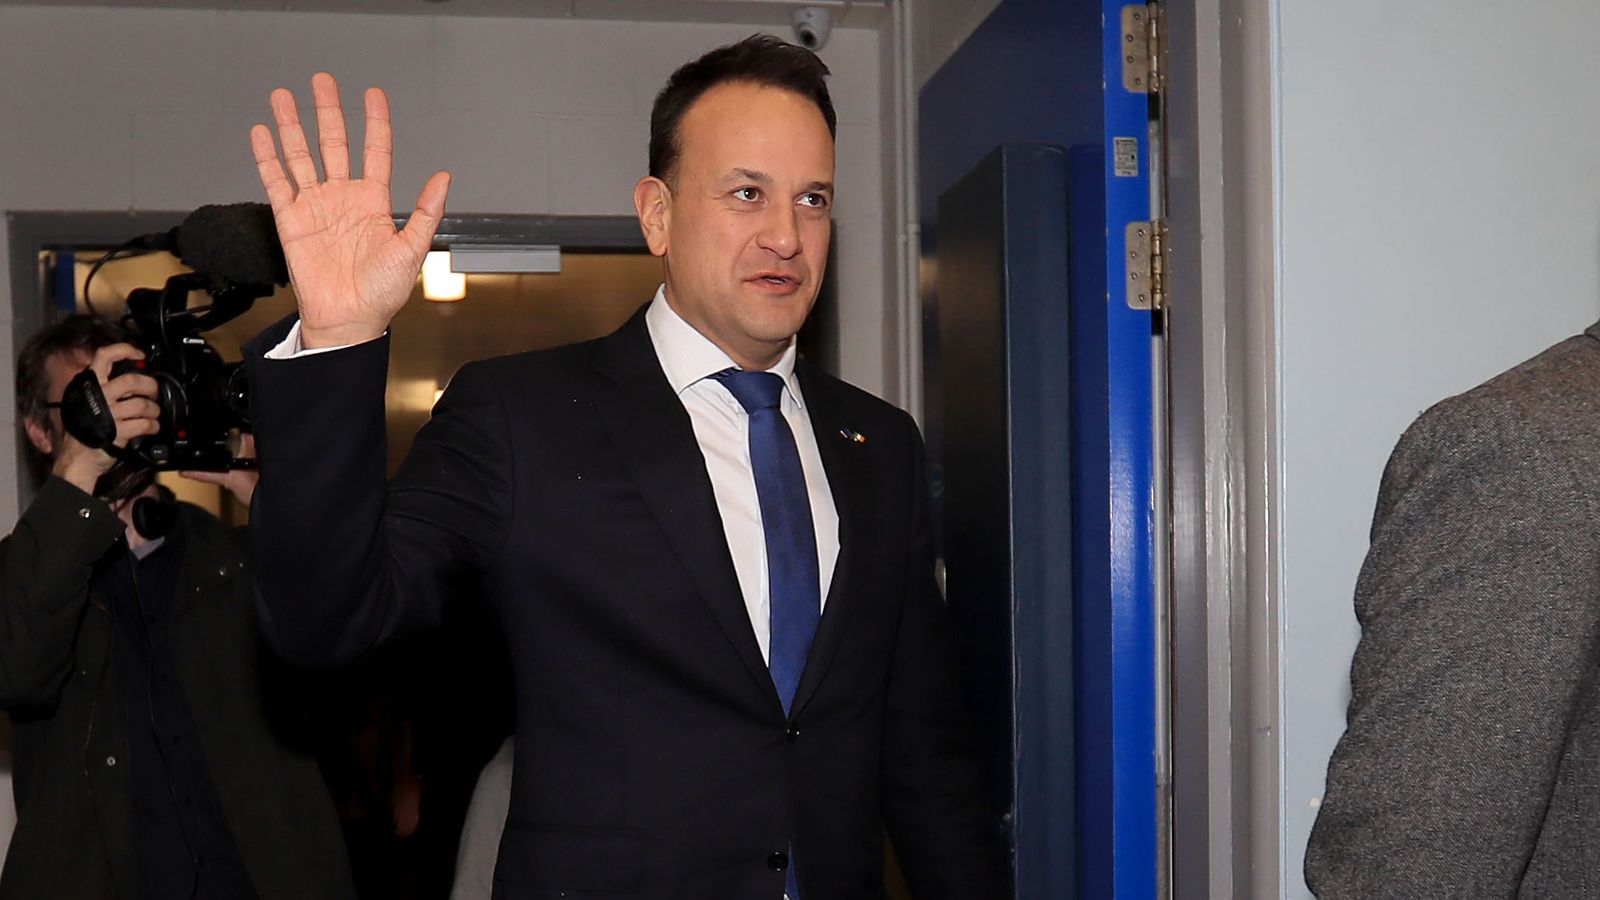 Ireland Taoiseach Leo Varadkar resigns after inconclusive election result